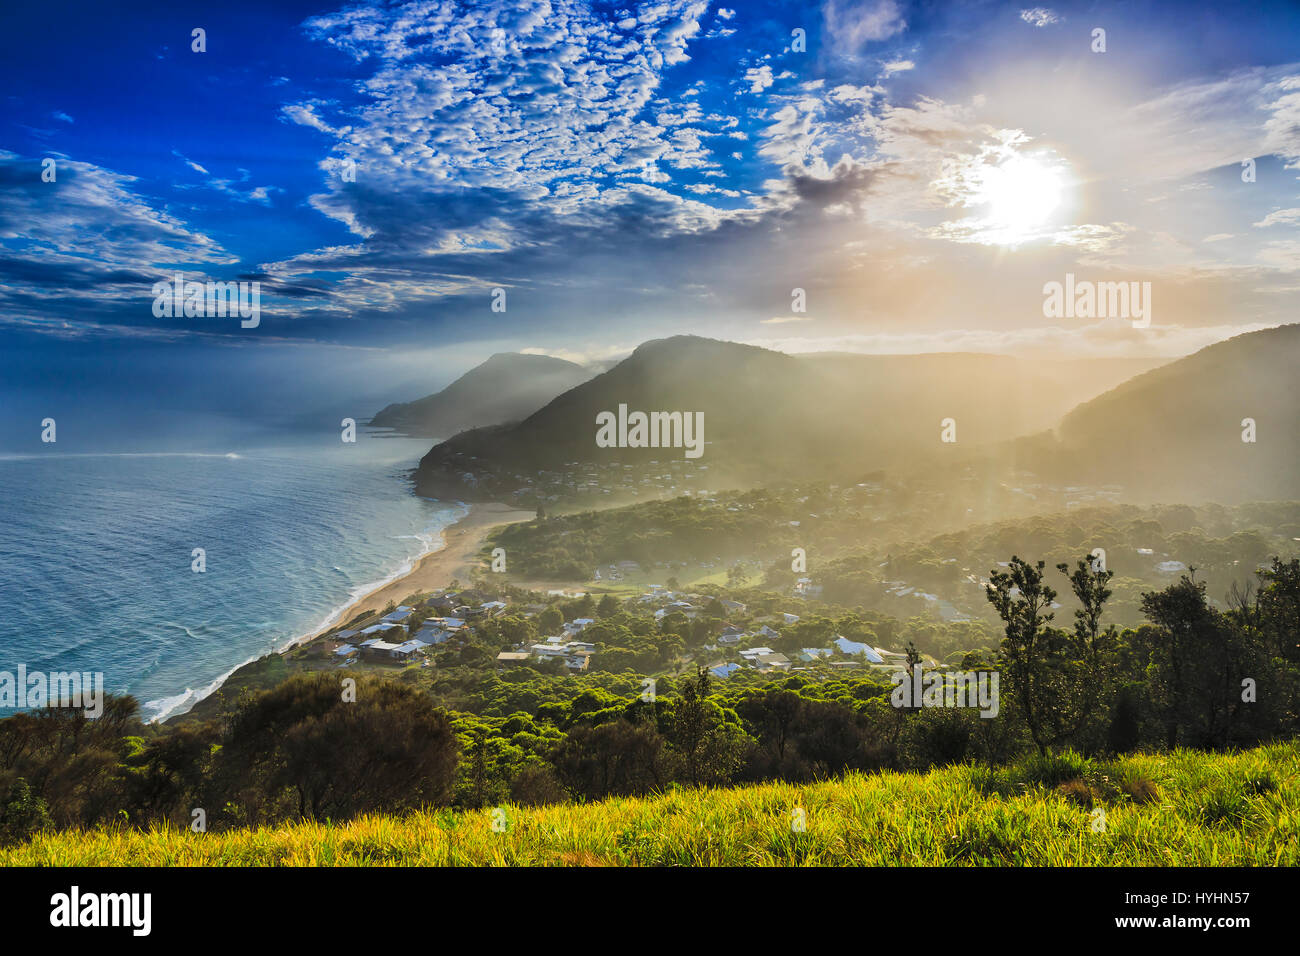 Stanwell tops bald hill top looking south towards Sea Cliff Bridge and Illawarra highlands area along Grand Pacific - Stock Image